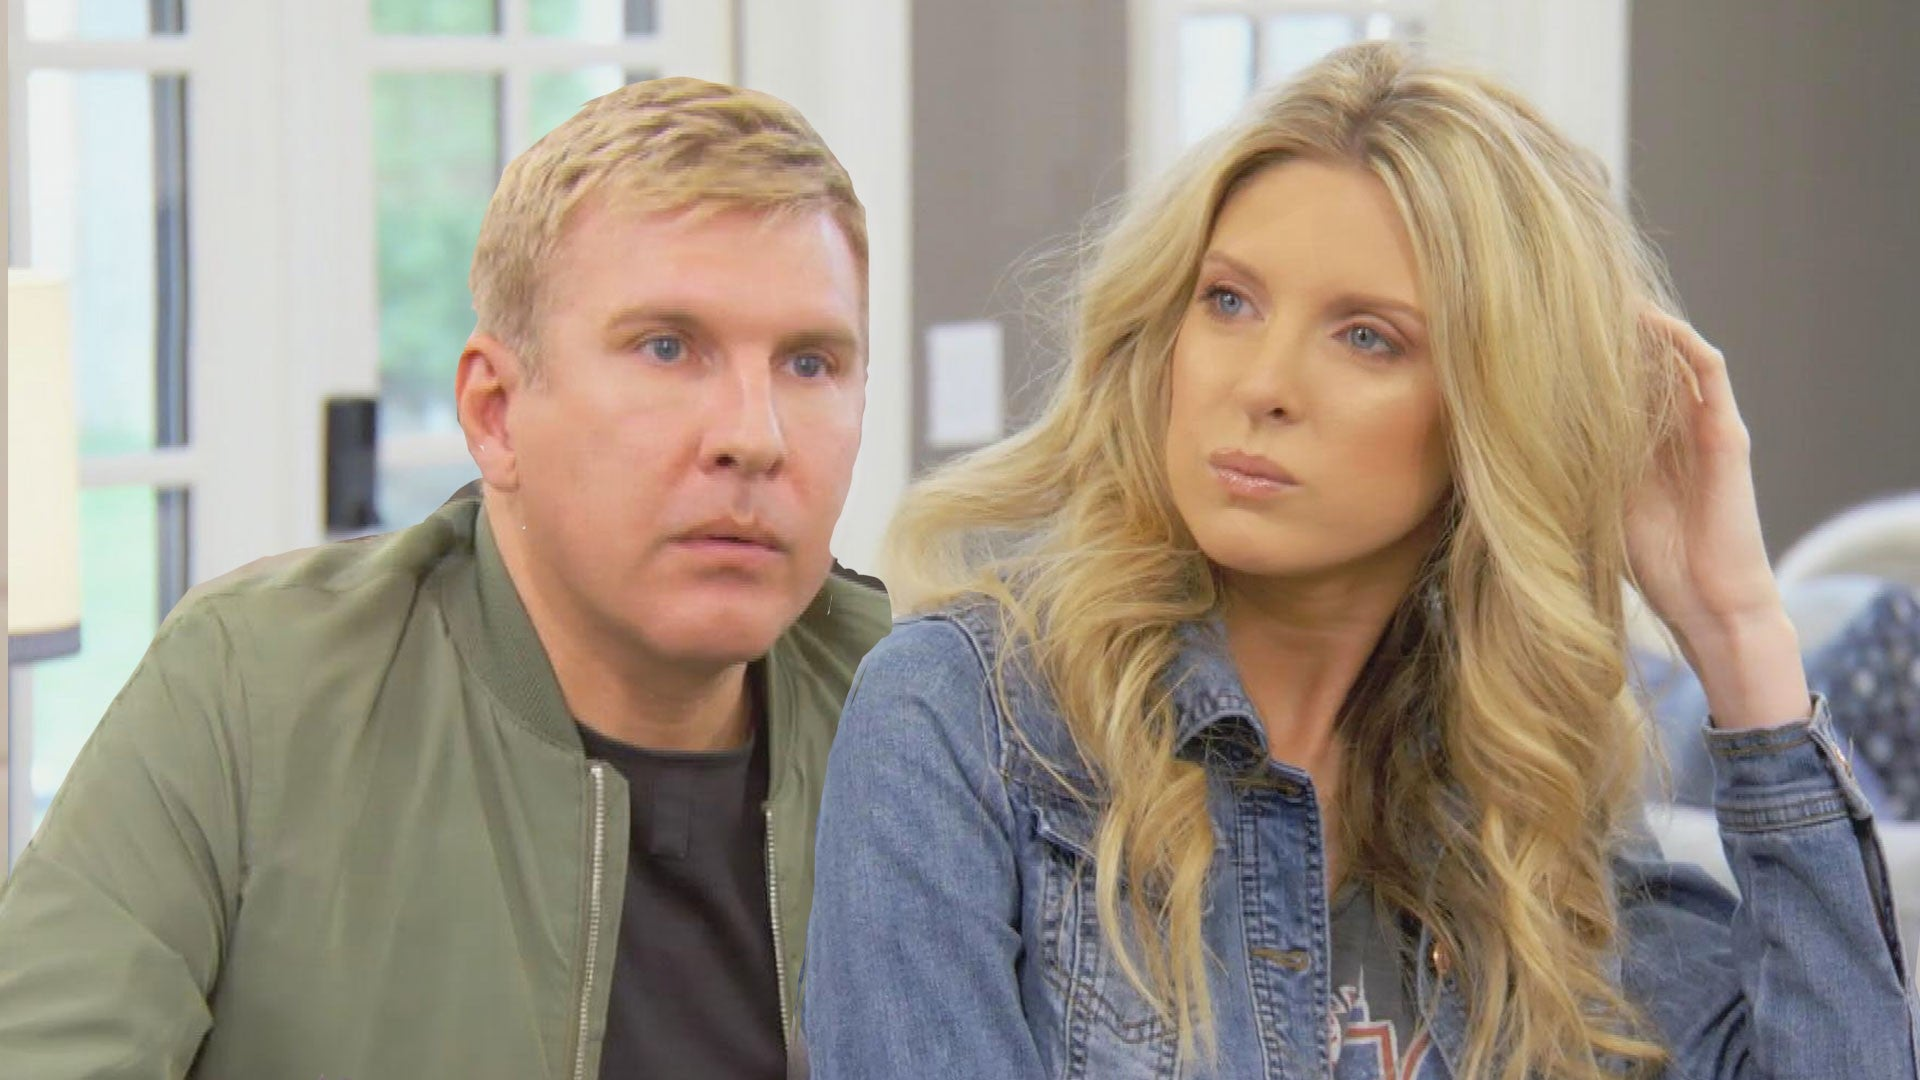 Lindsie Chrisley Fires Back At Parents After They Accuse Her Of